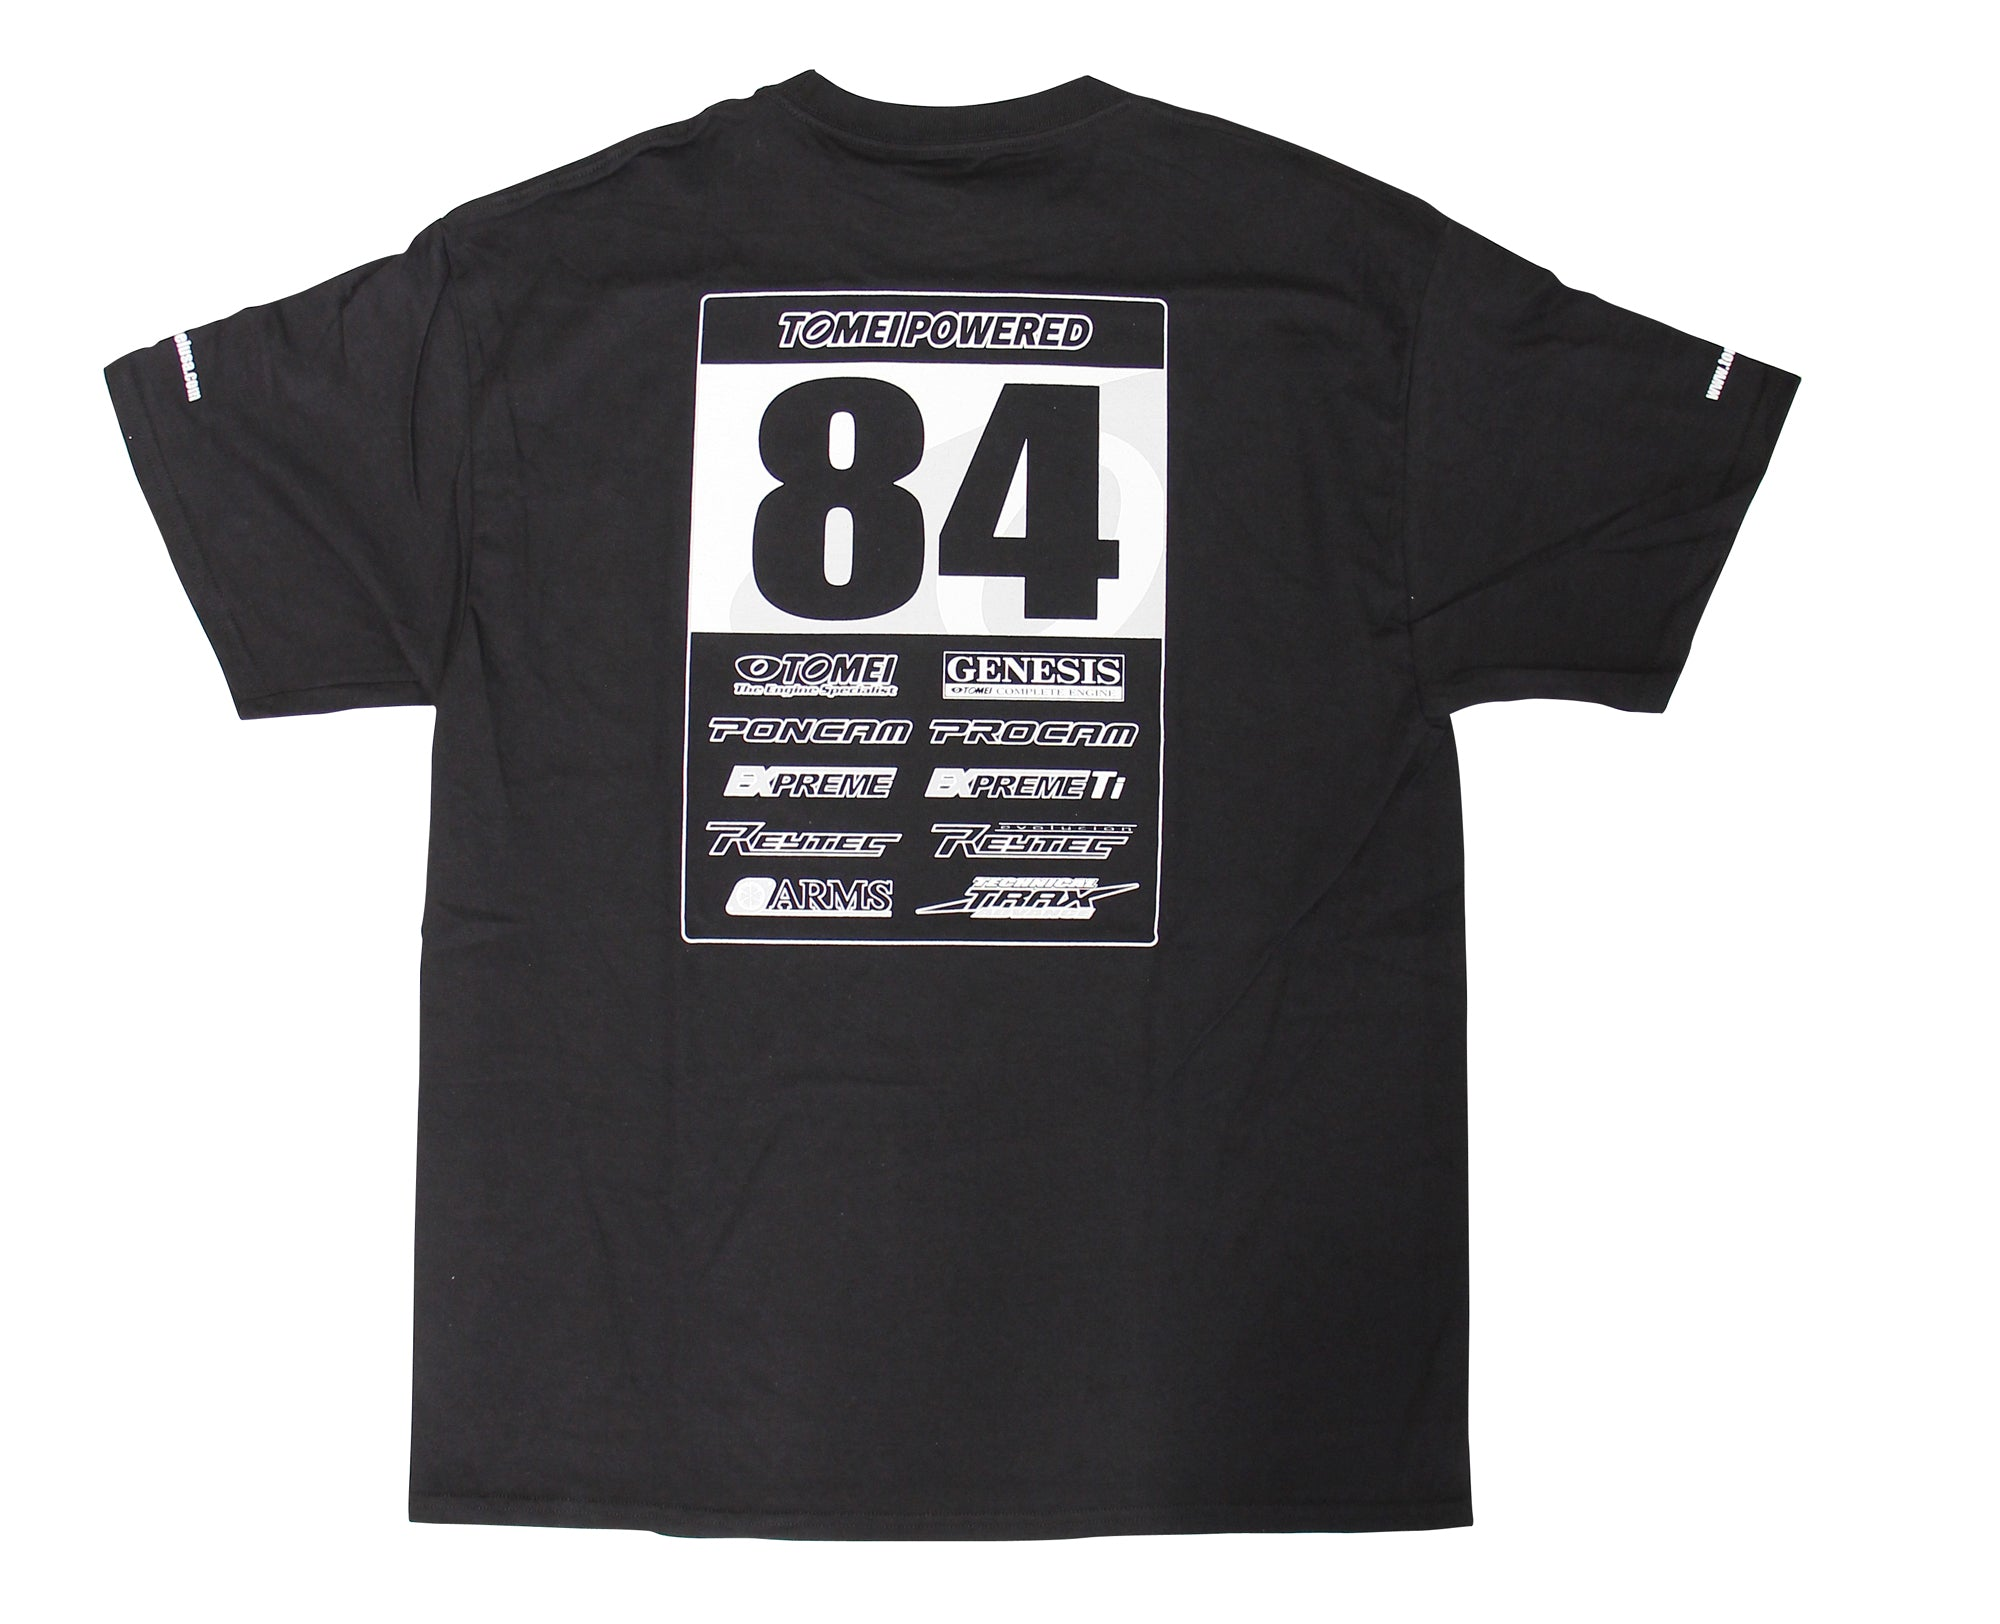 Tomei T-SHIRT TOMEI #84 2011  BLACK  3XL